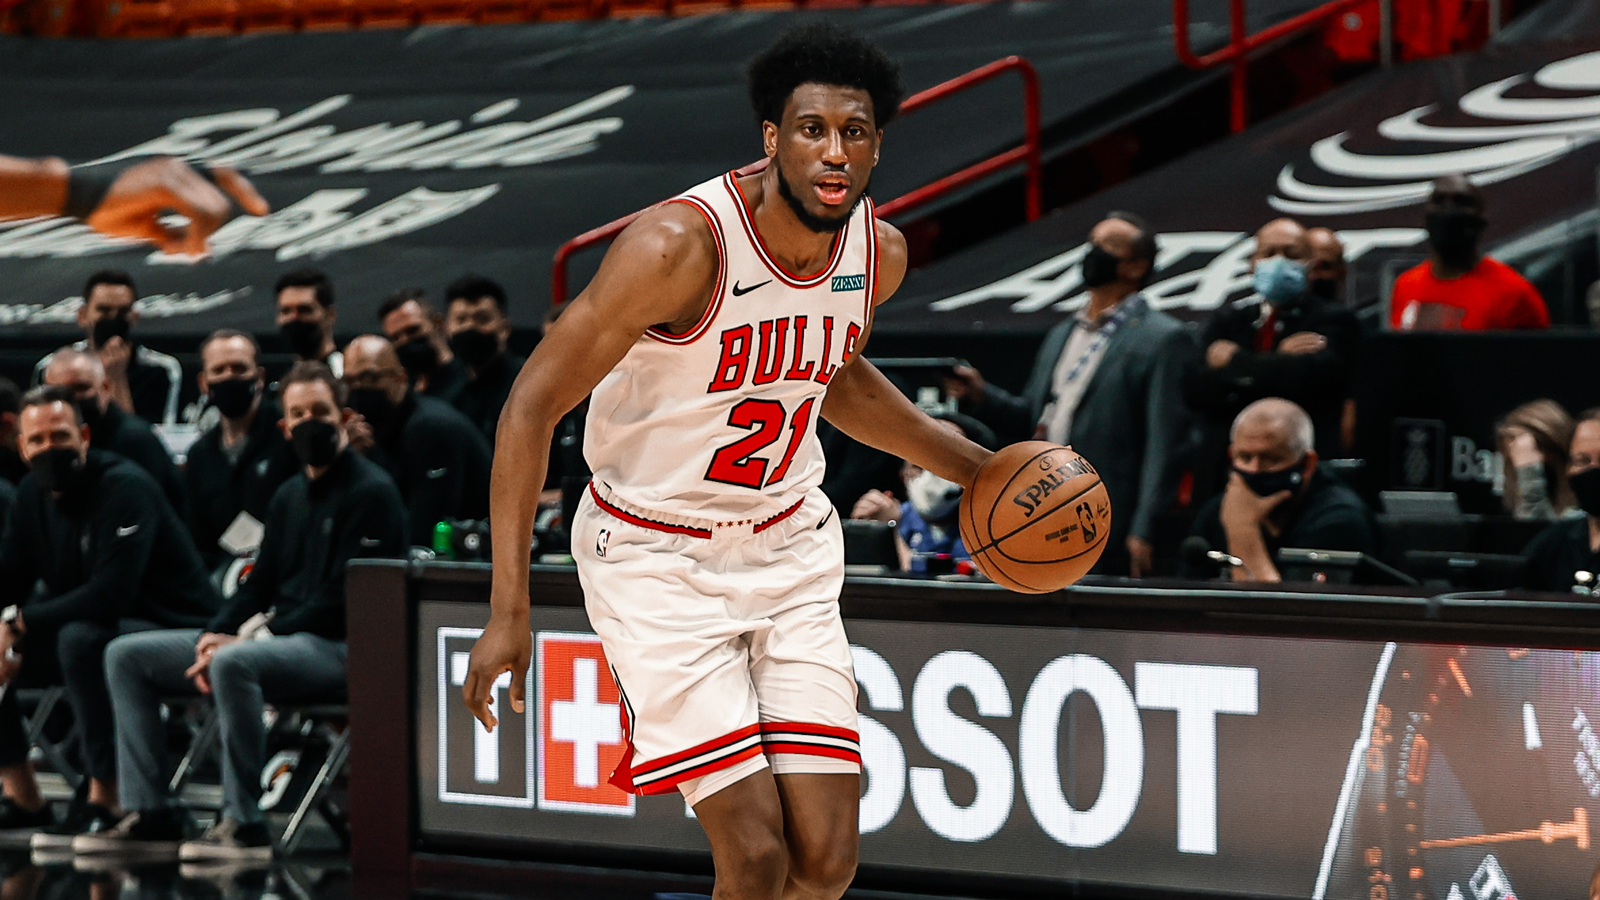 VIDEO: Thad Young's best Hustle plays from the 2020-21 season